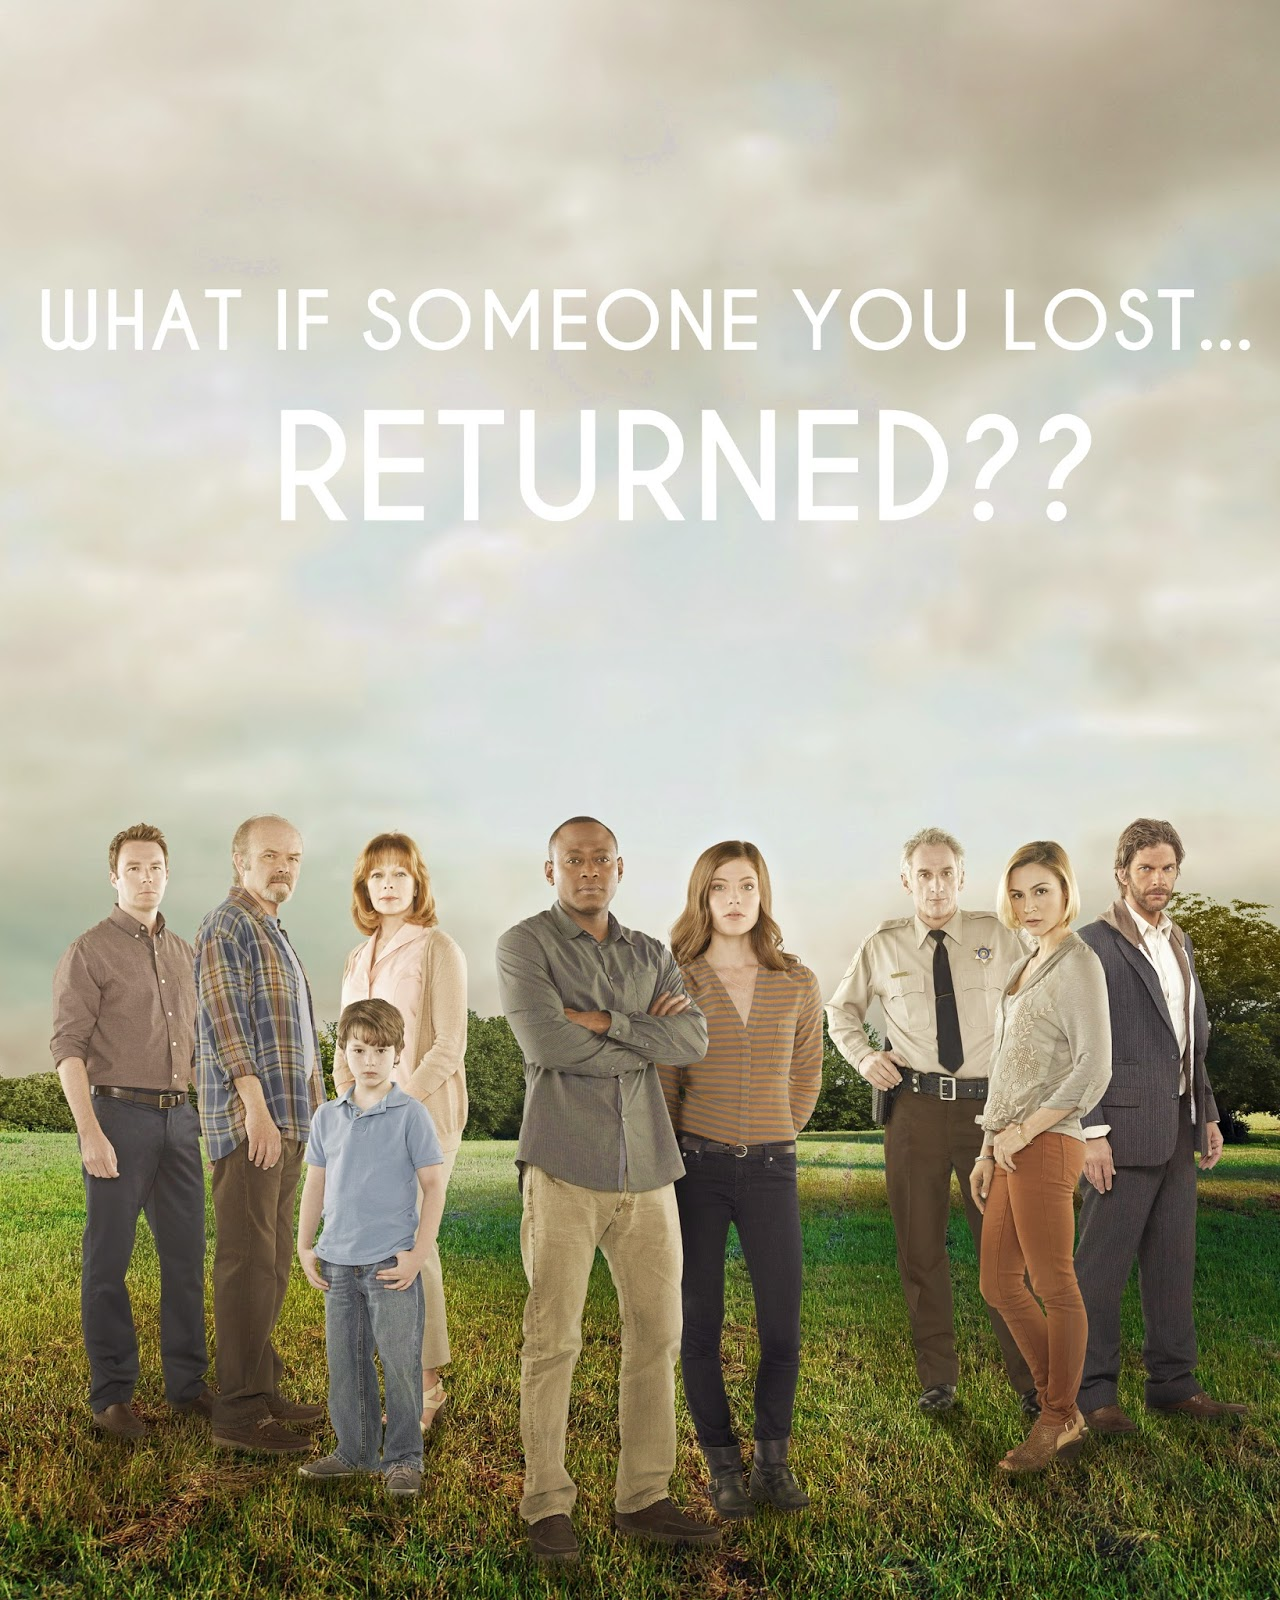 What if someone you love returned? - Resurrection